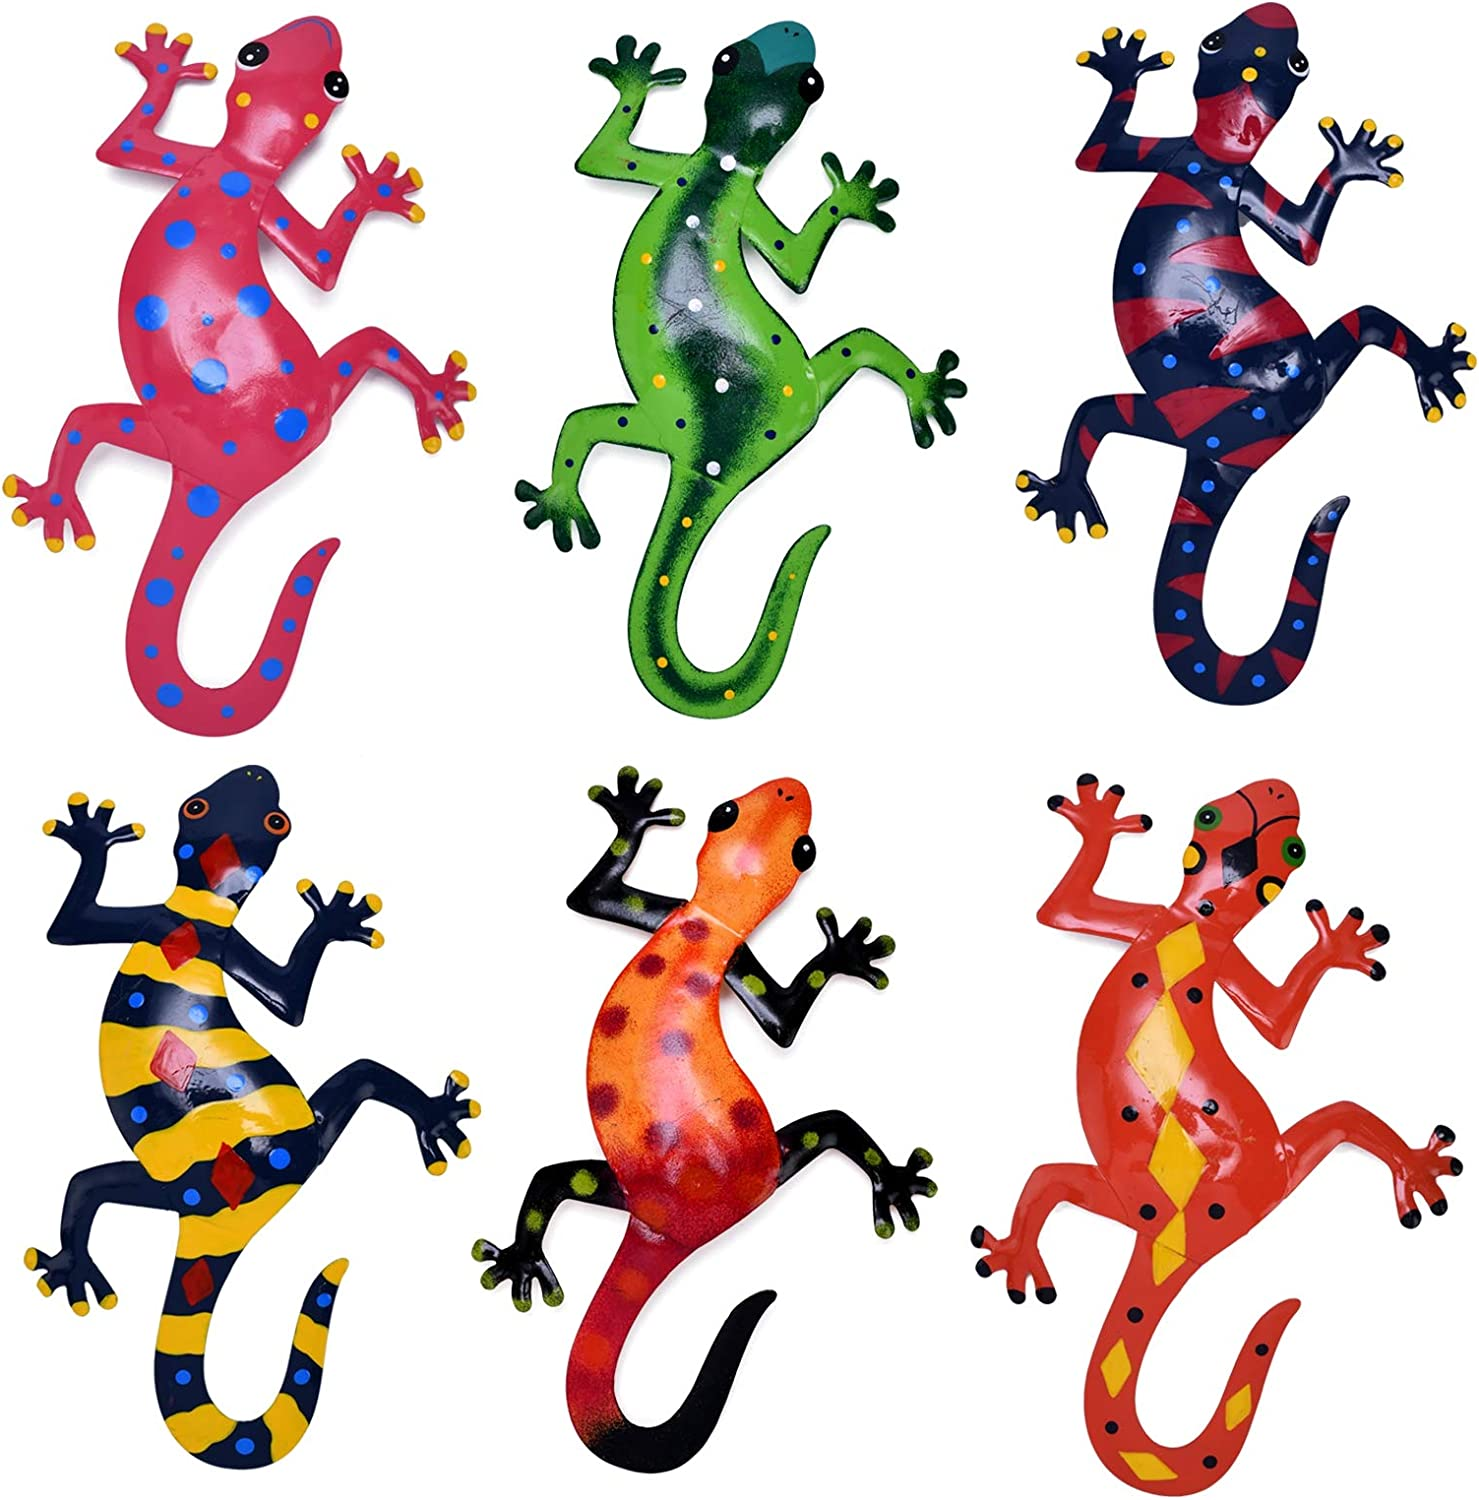 HOGARDECK Metal Gecko Wall Decor - Lizard Art Wall Decorations for Yard, Fence, Garden, Home, Outdoor and Indoor Wall Sculptures, Set of 6, Handmade Gift for Kids